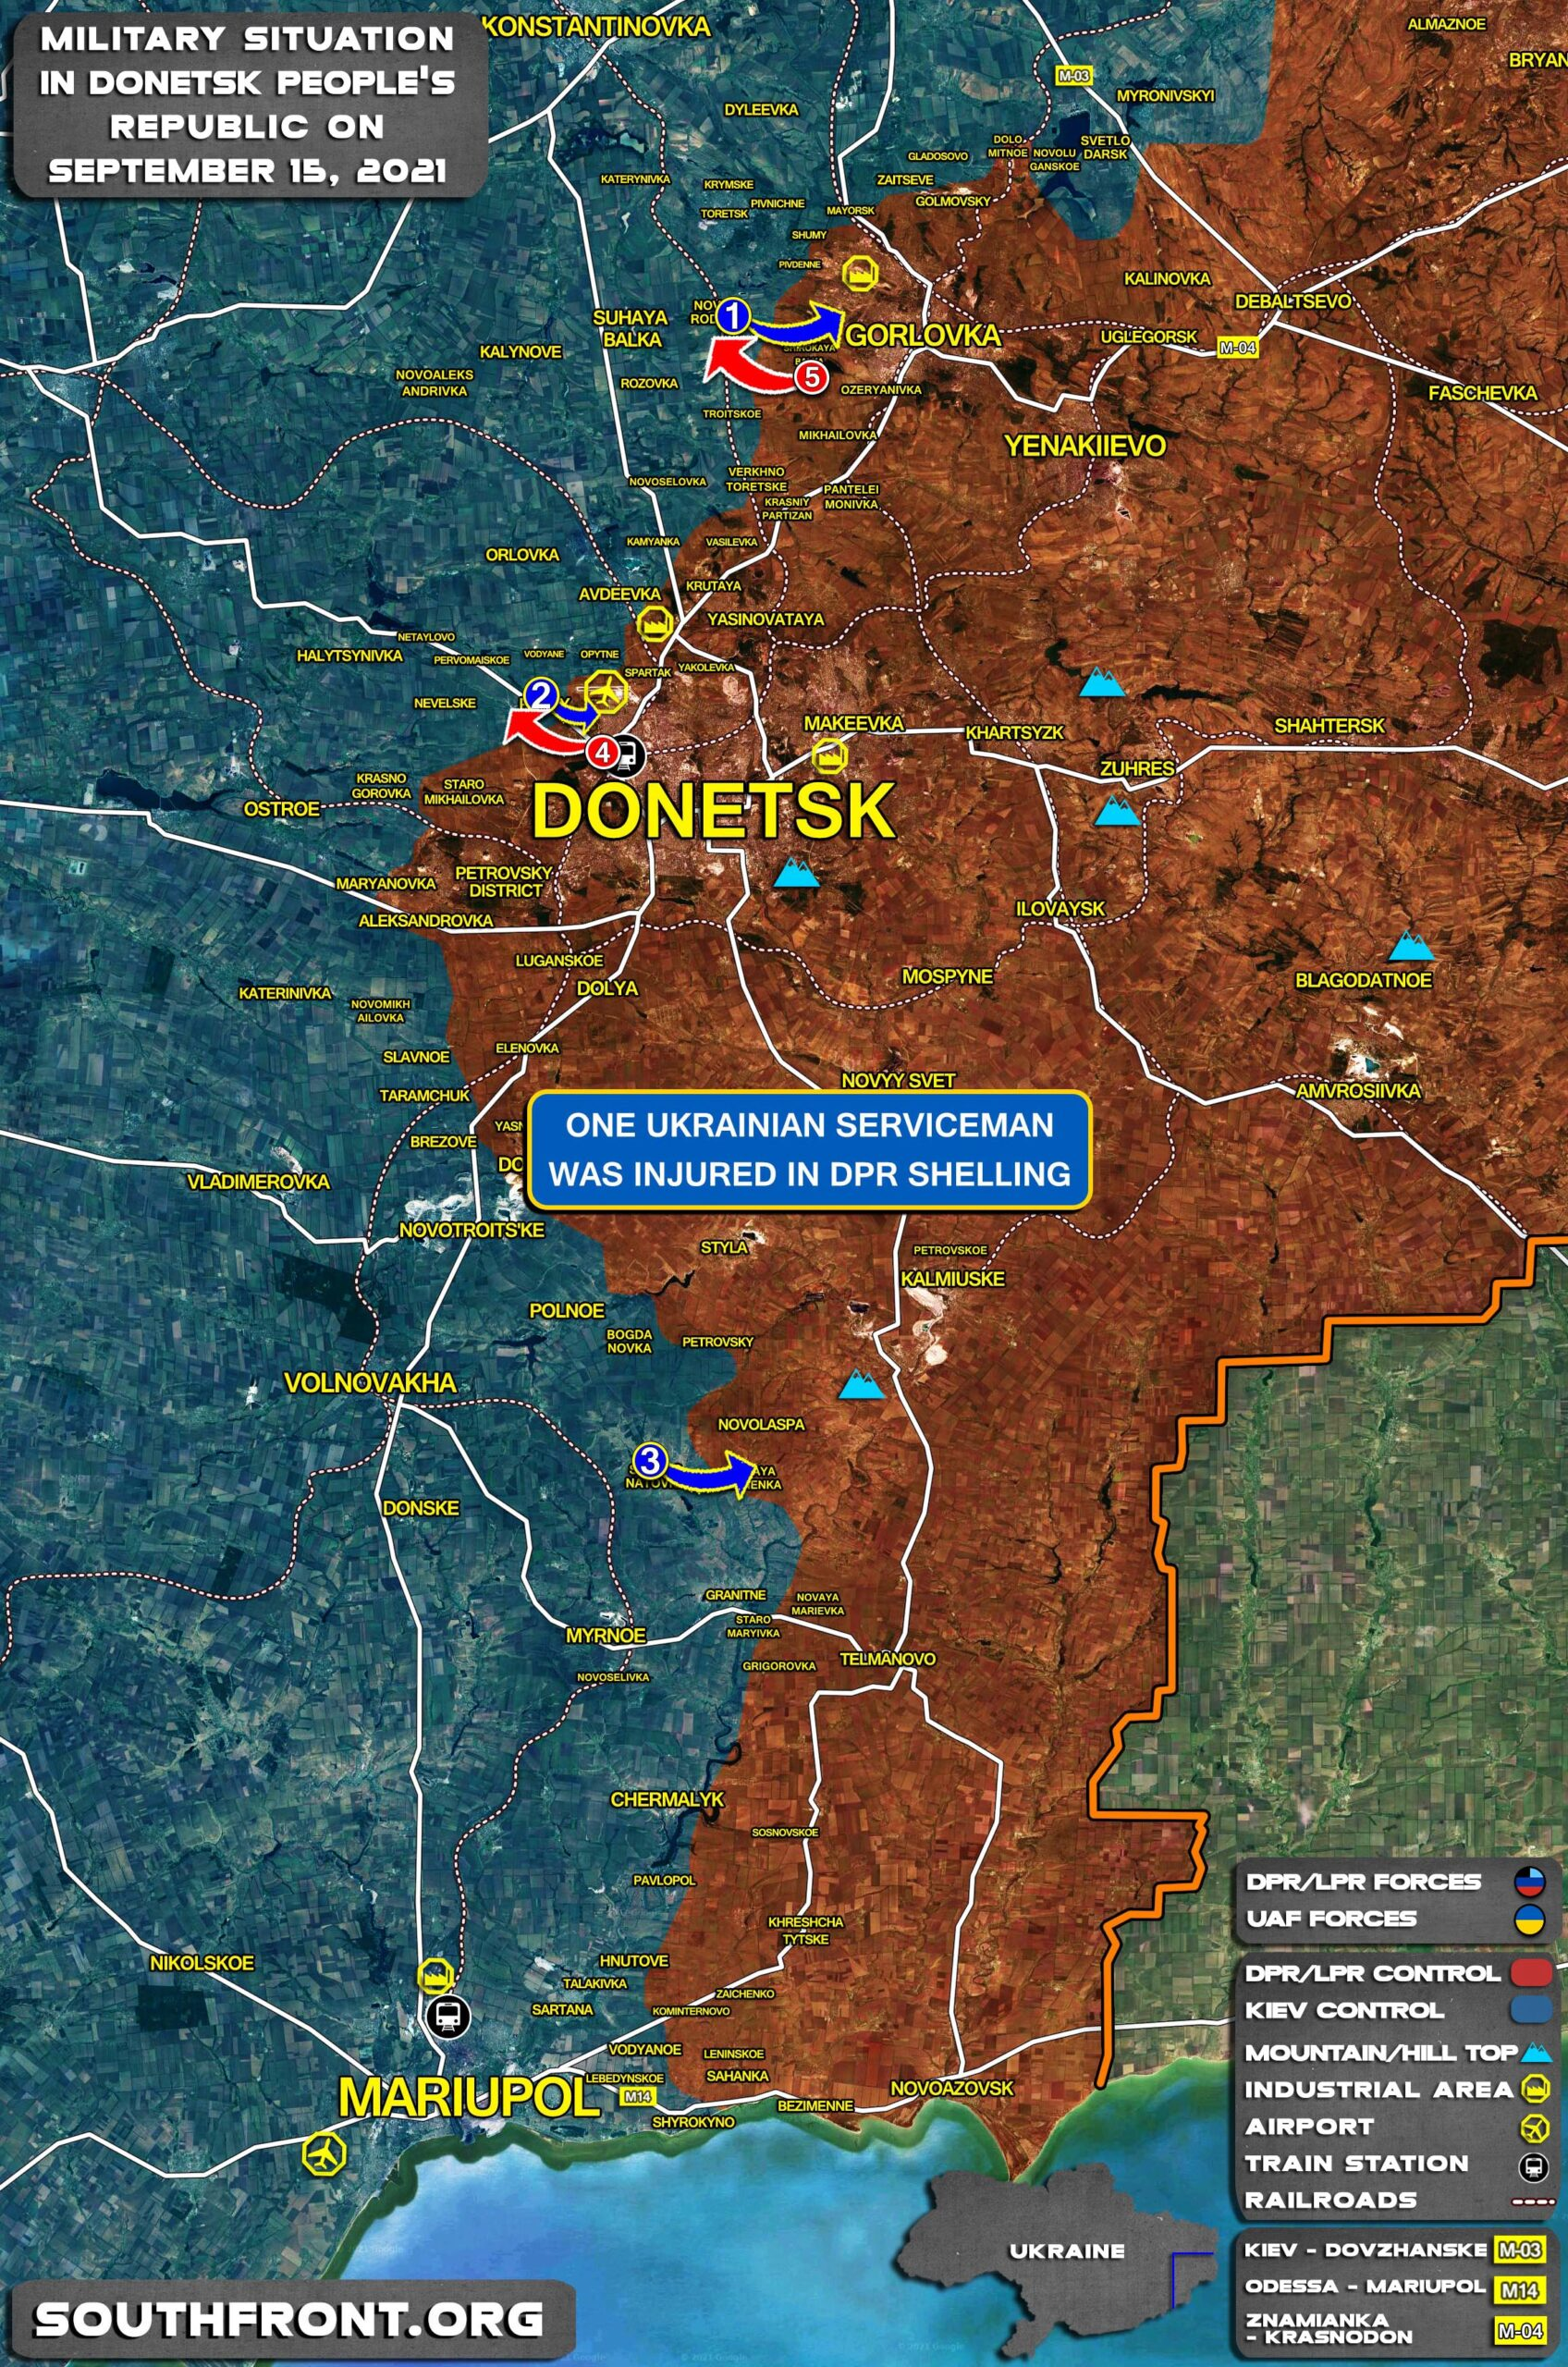 Military Situation In Donetsk People's Republic On September 15, 2021 (Map Update)